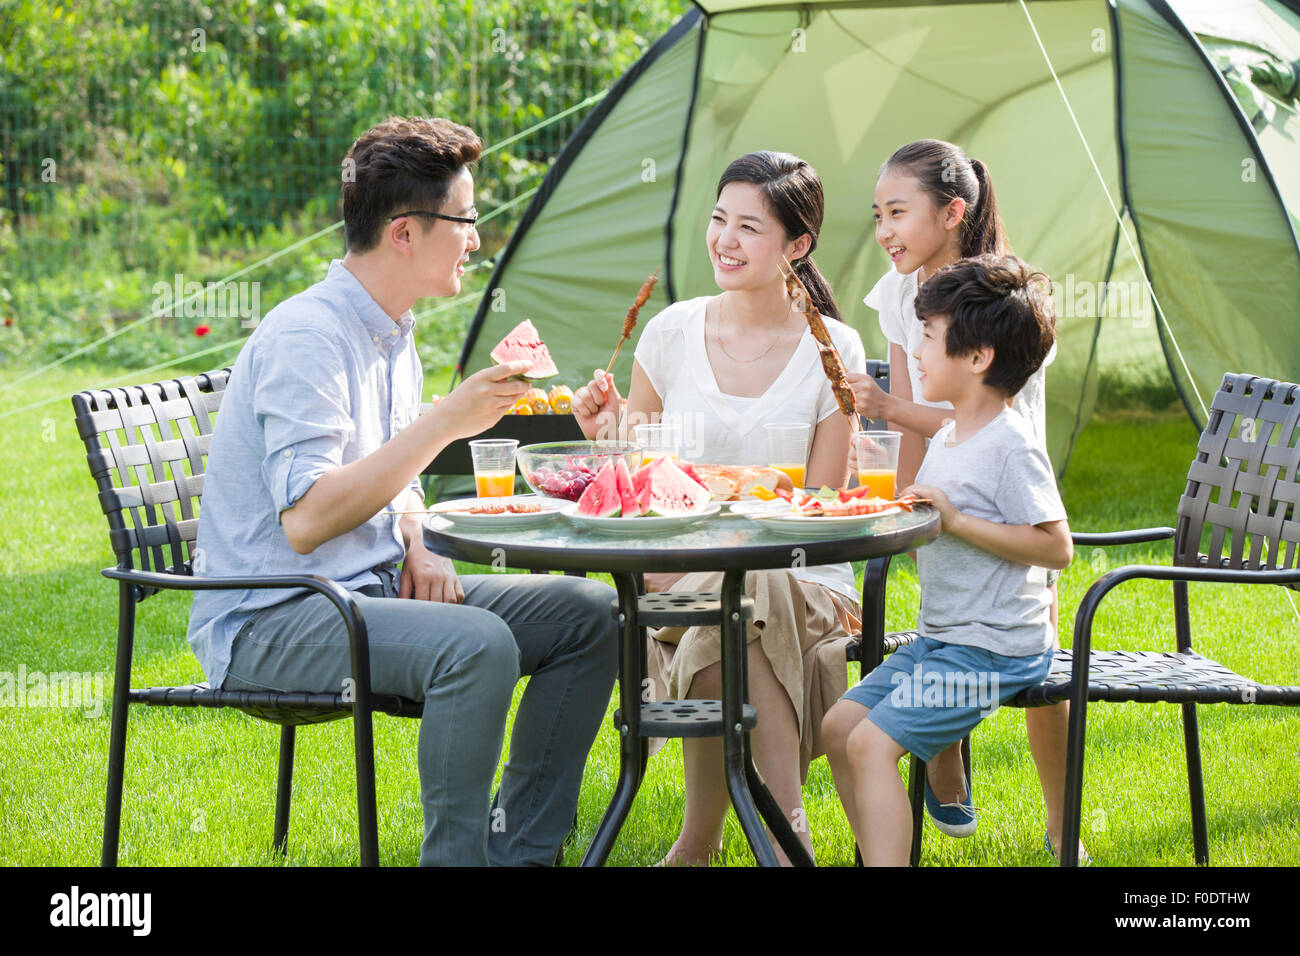 Young family picnicking outdoors - Stock Image